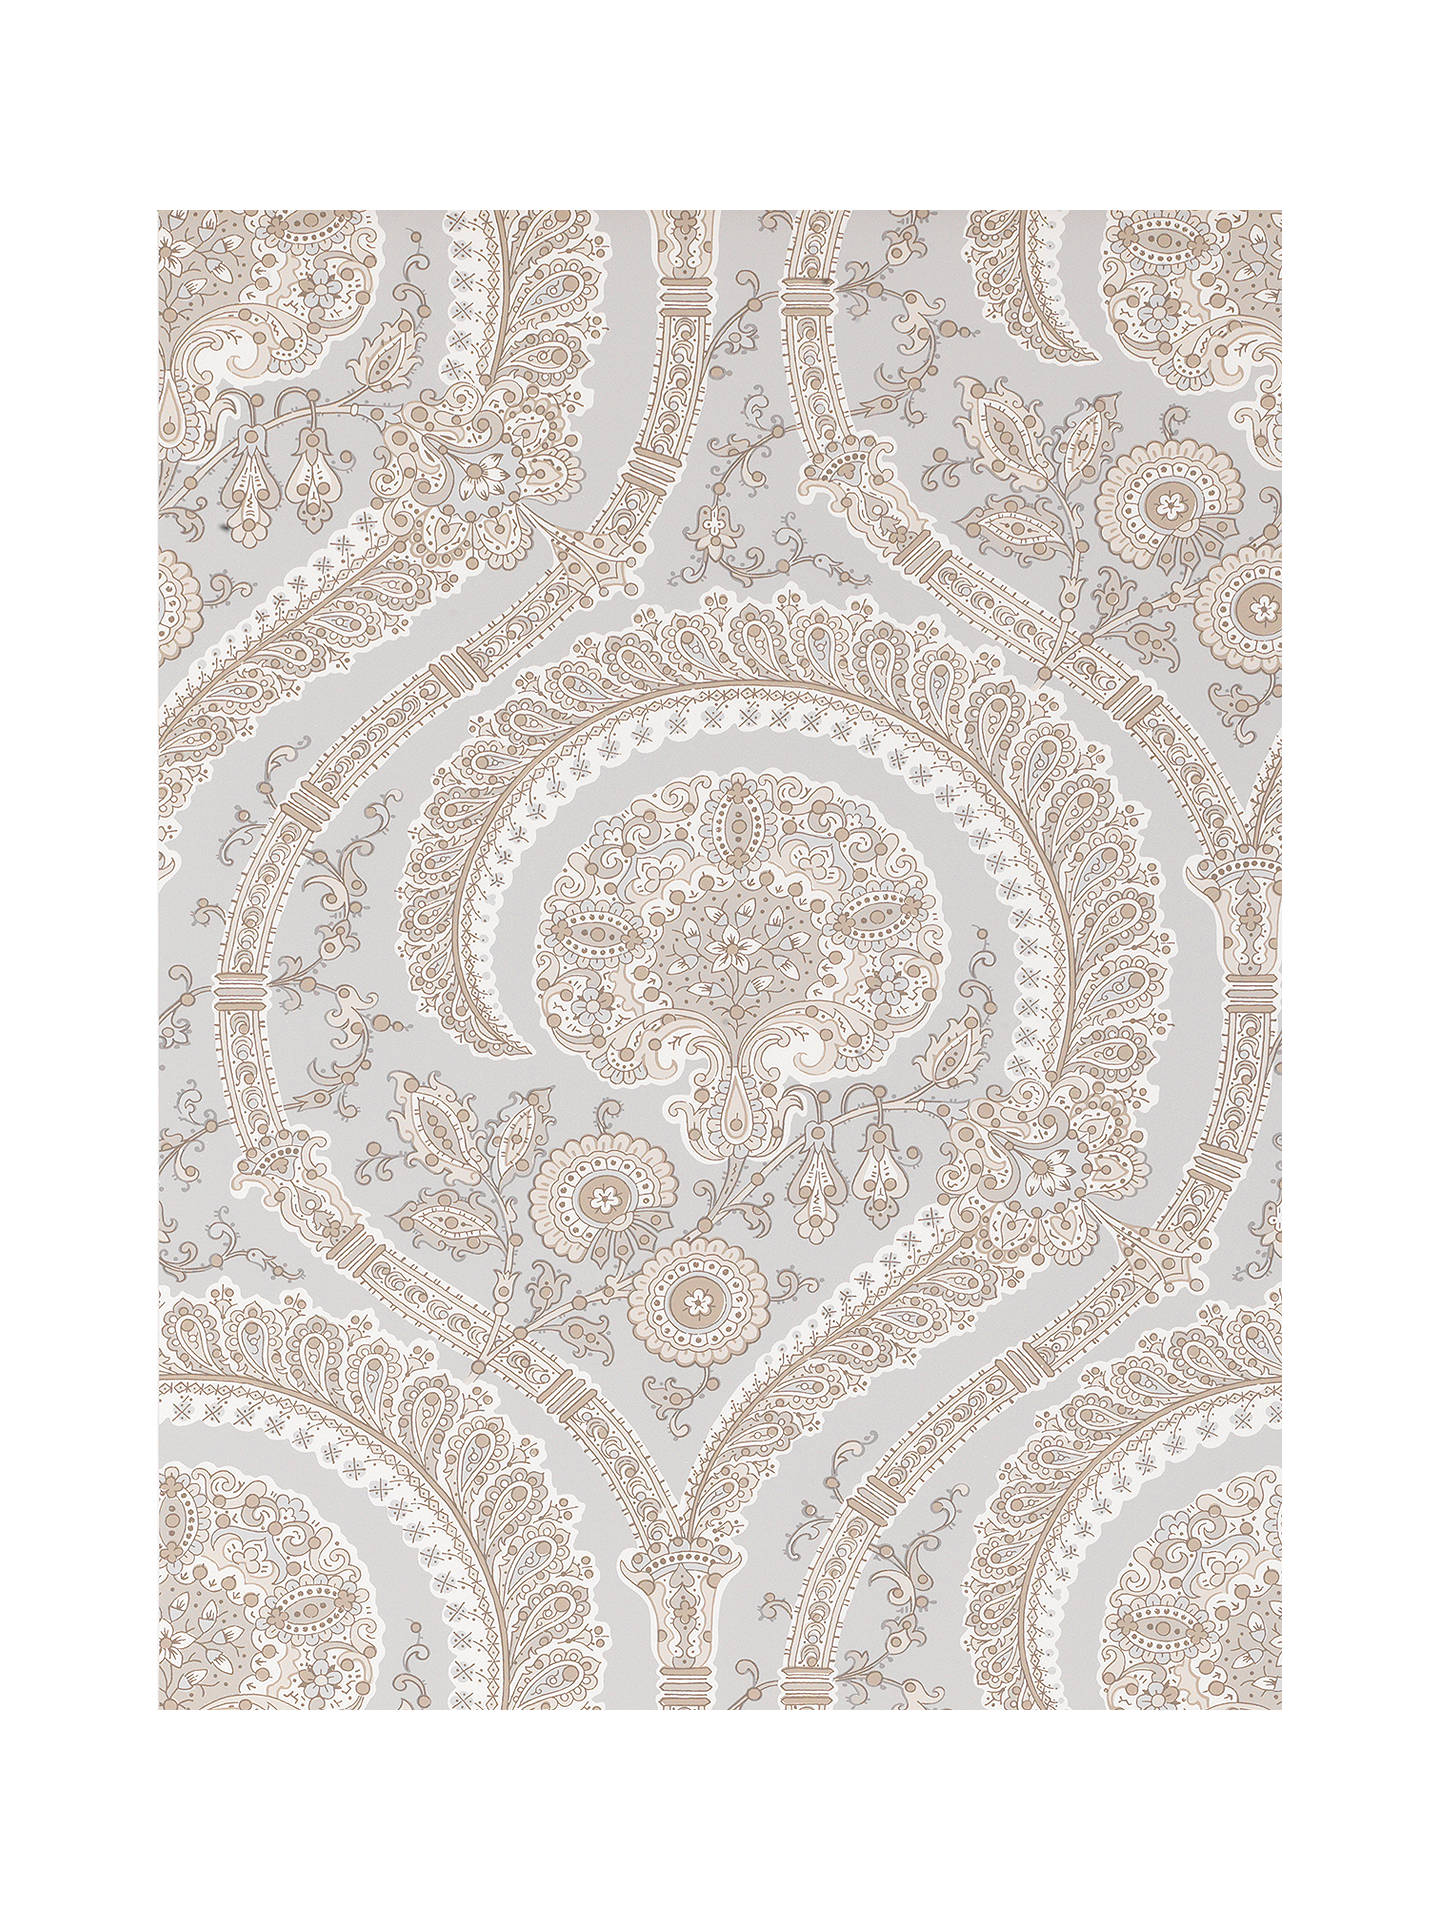 Buy Nina Campbell Les Indiennes Wallpaper, NCW4350-02 Online at johnlewis.com